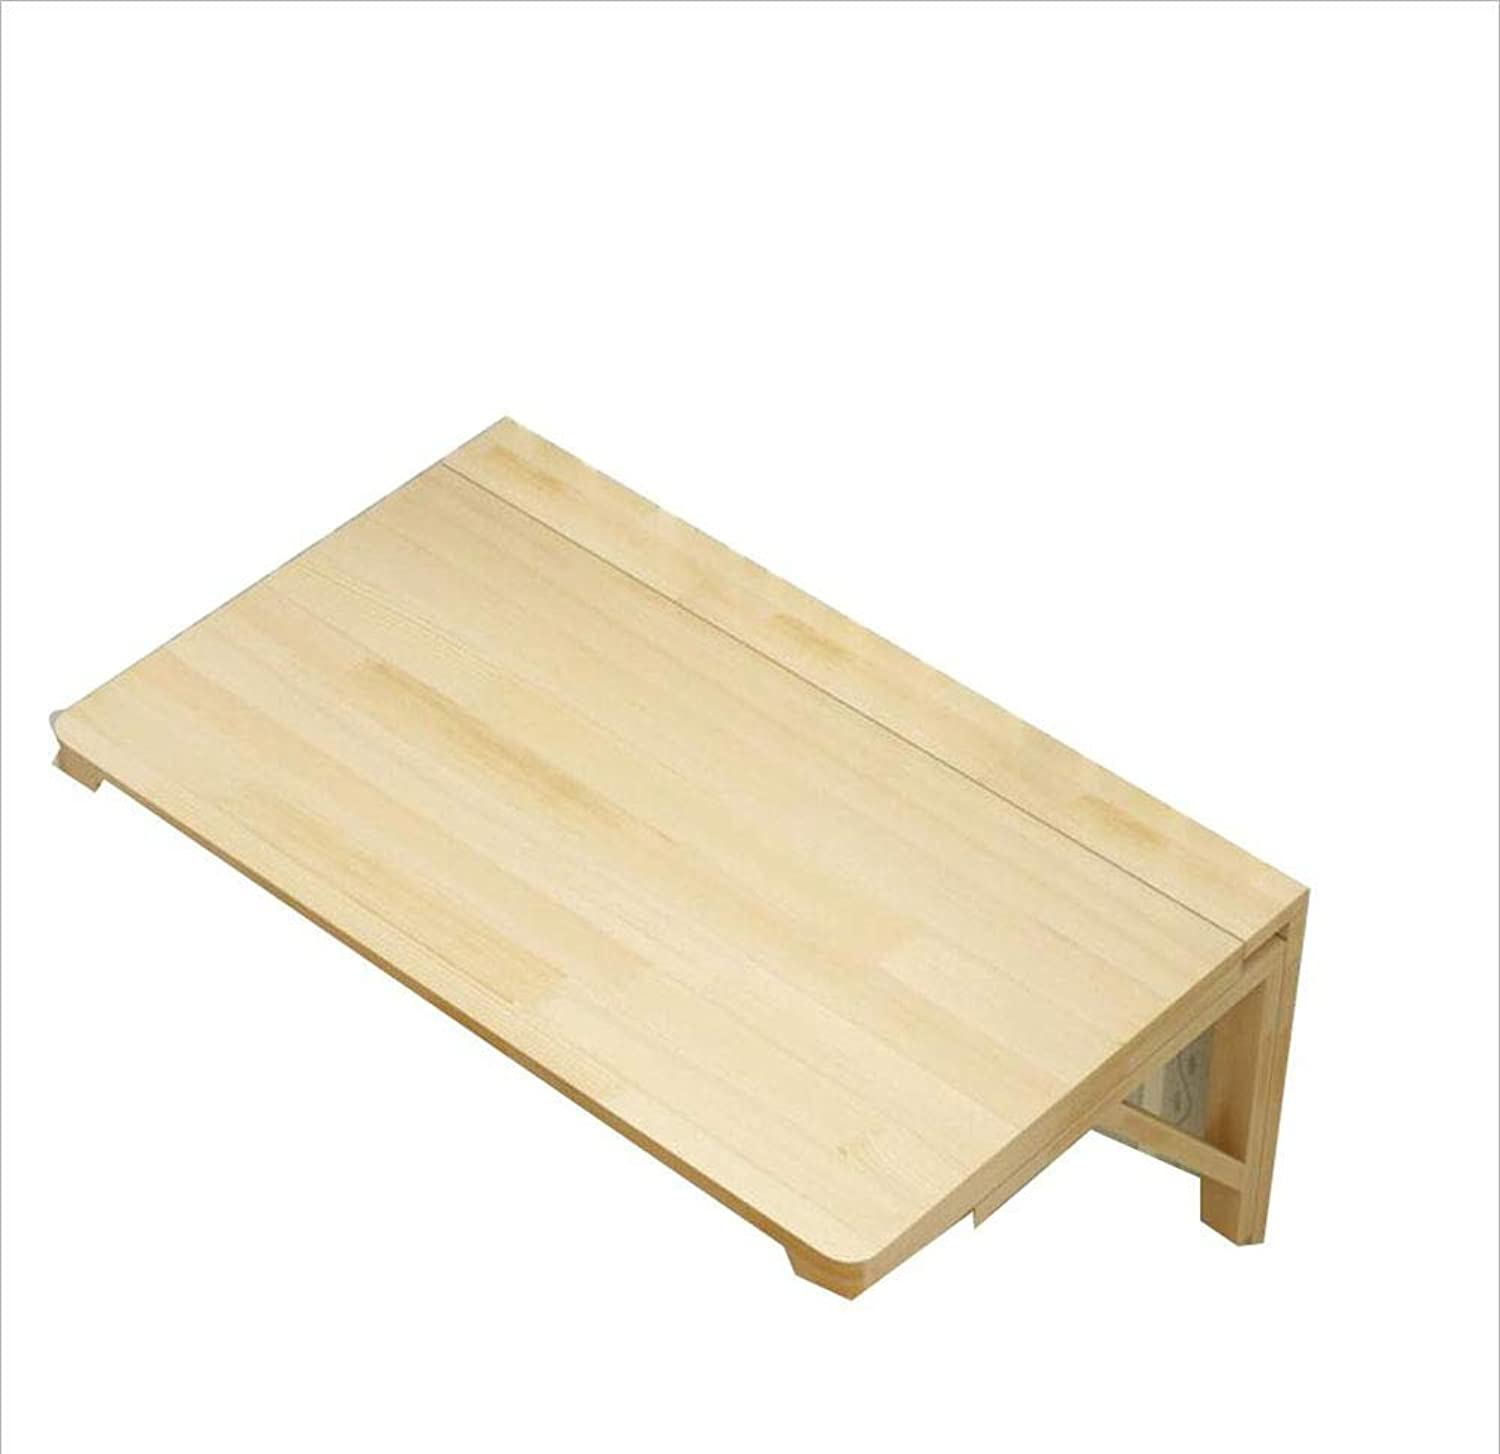 Wood Folding Table Wall-Mounted Dining Table Computer Table Study Table 100cmx50cm (Size   60  40)